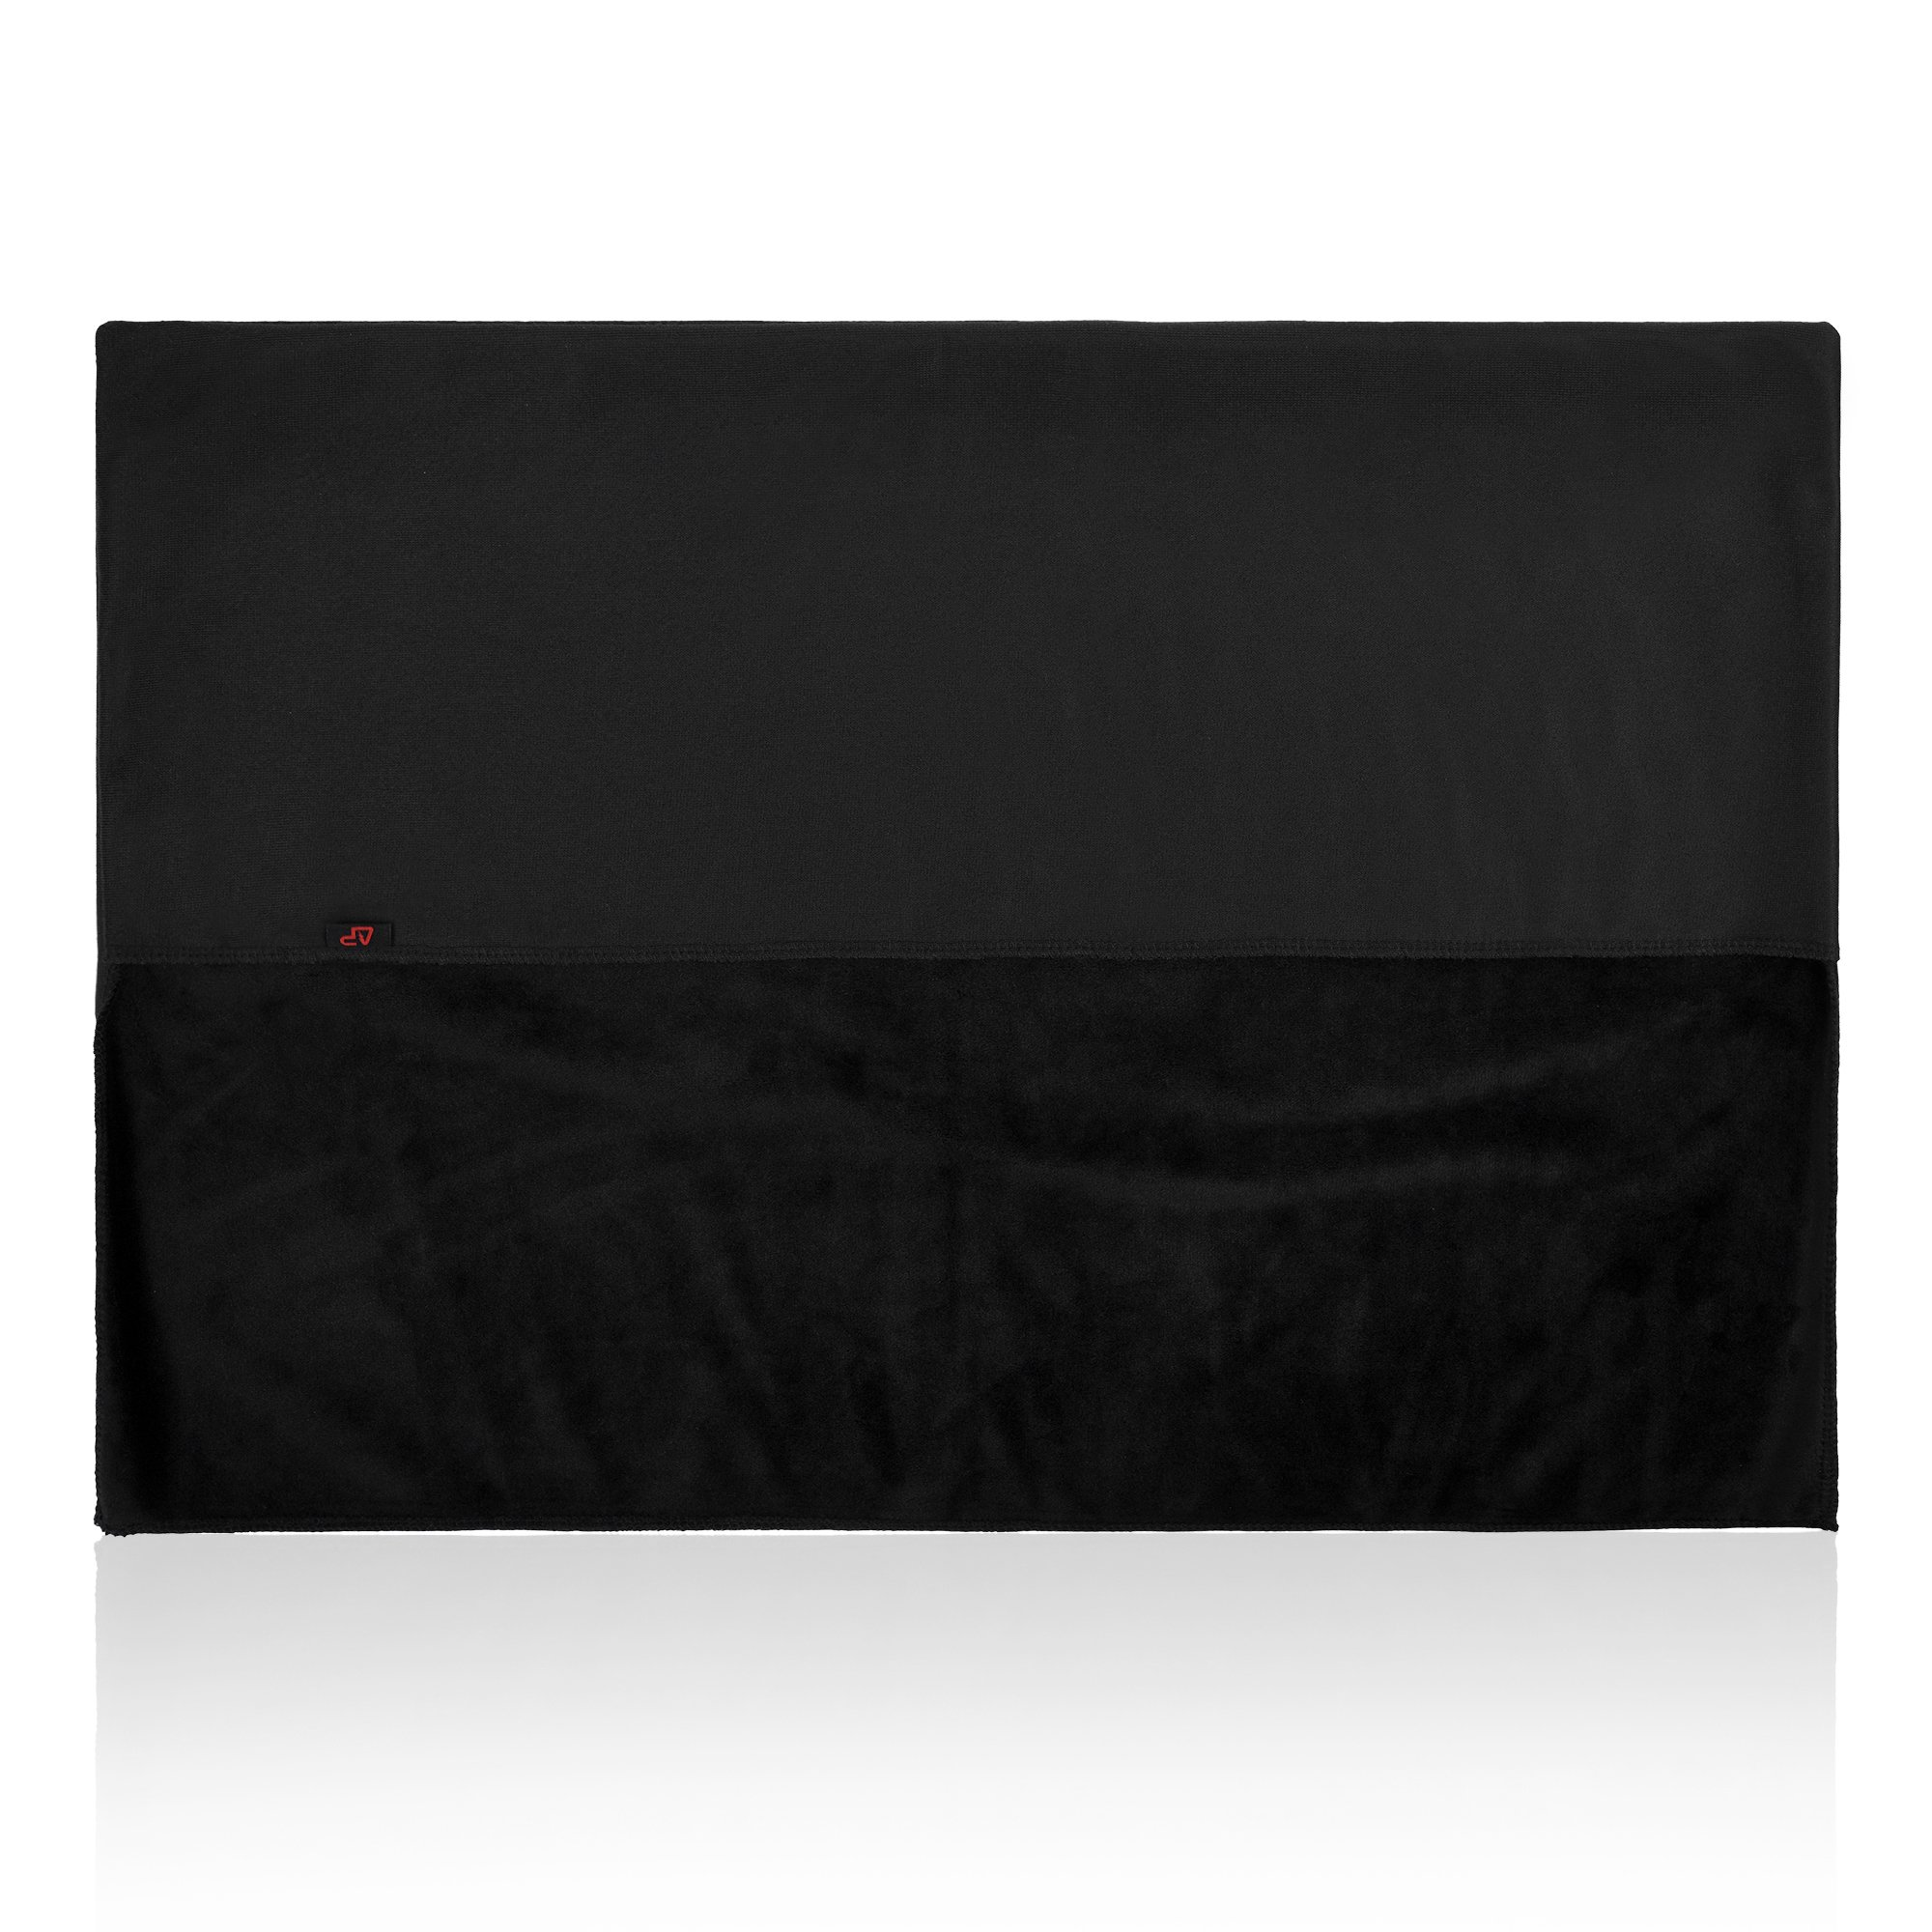 Lightning Power - Premium Protective Dust Screen Cover Sleeve with inner soft lining for Apple iMac (27 Inch, Black) by Lightning Power (Image #1)